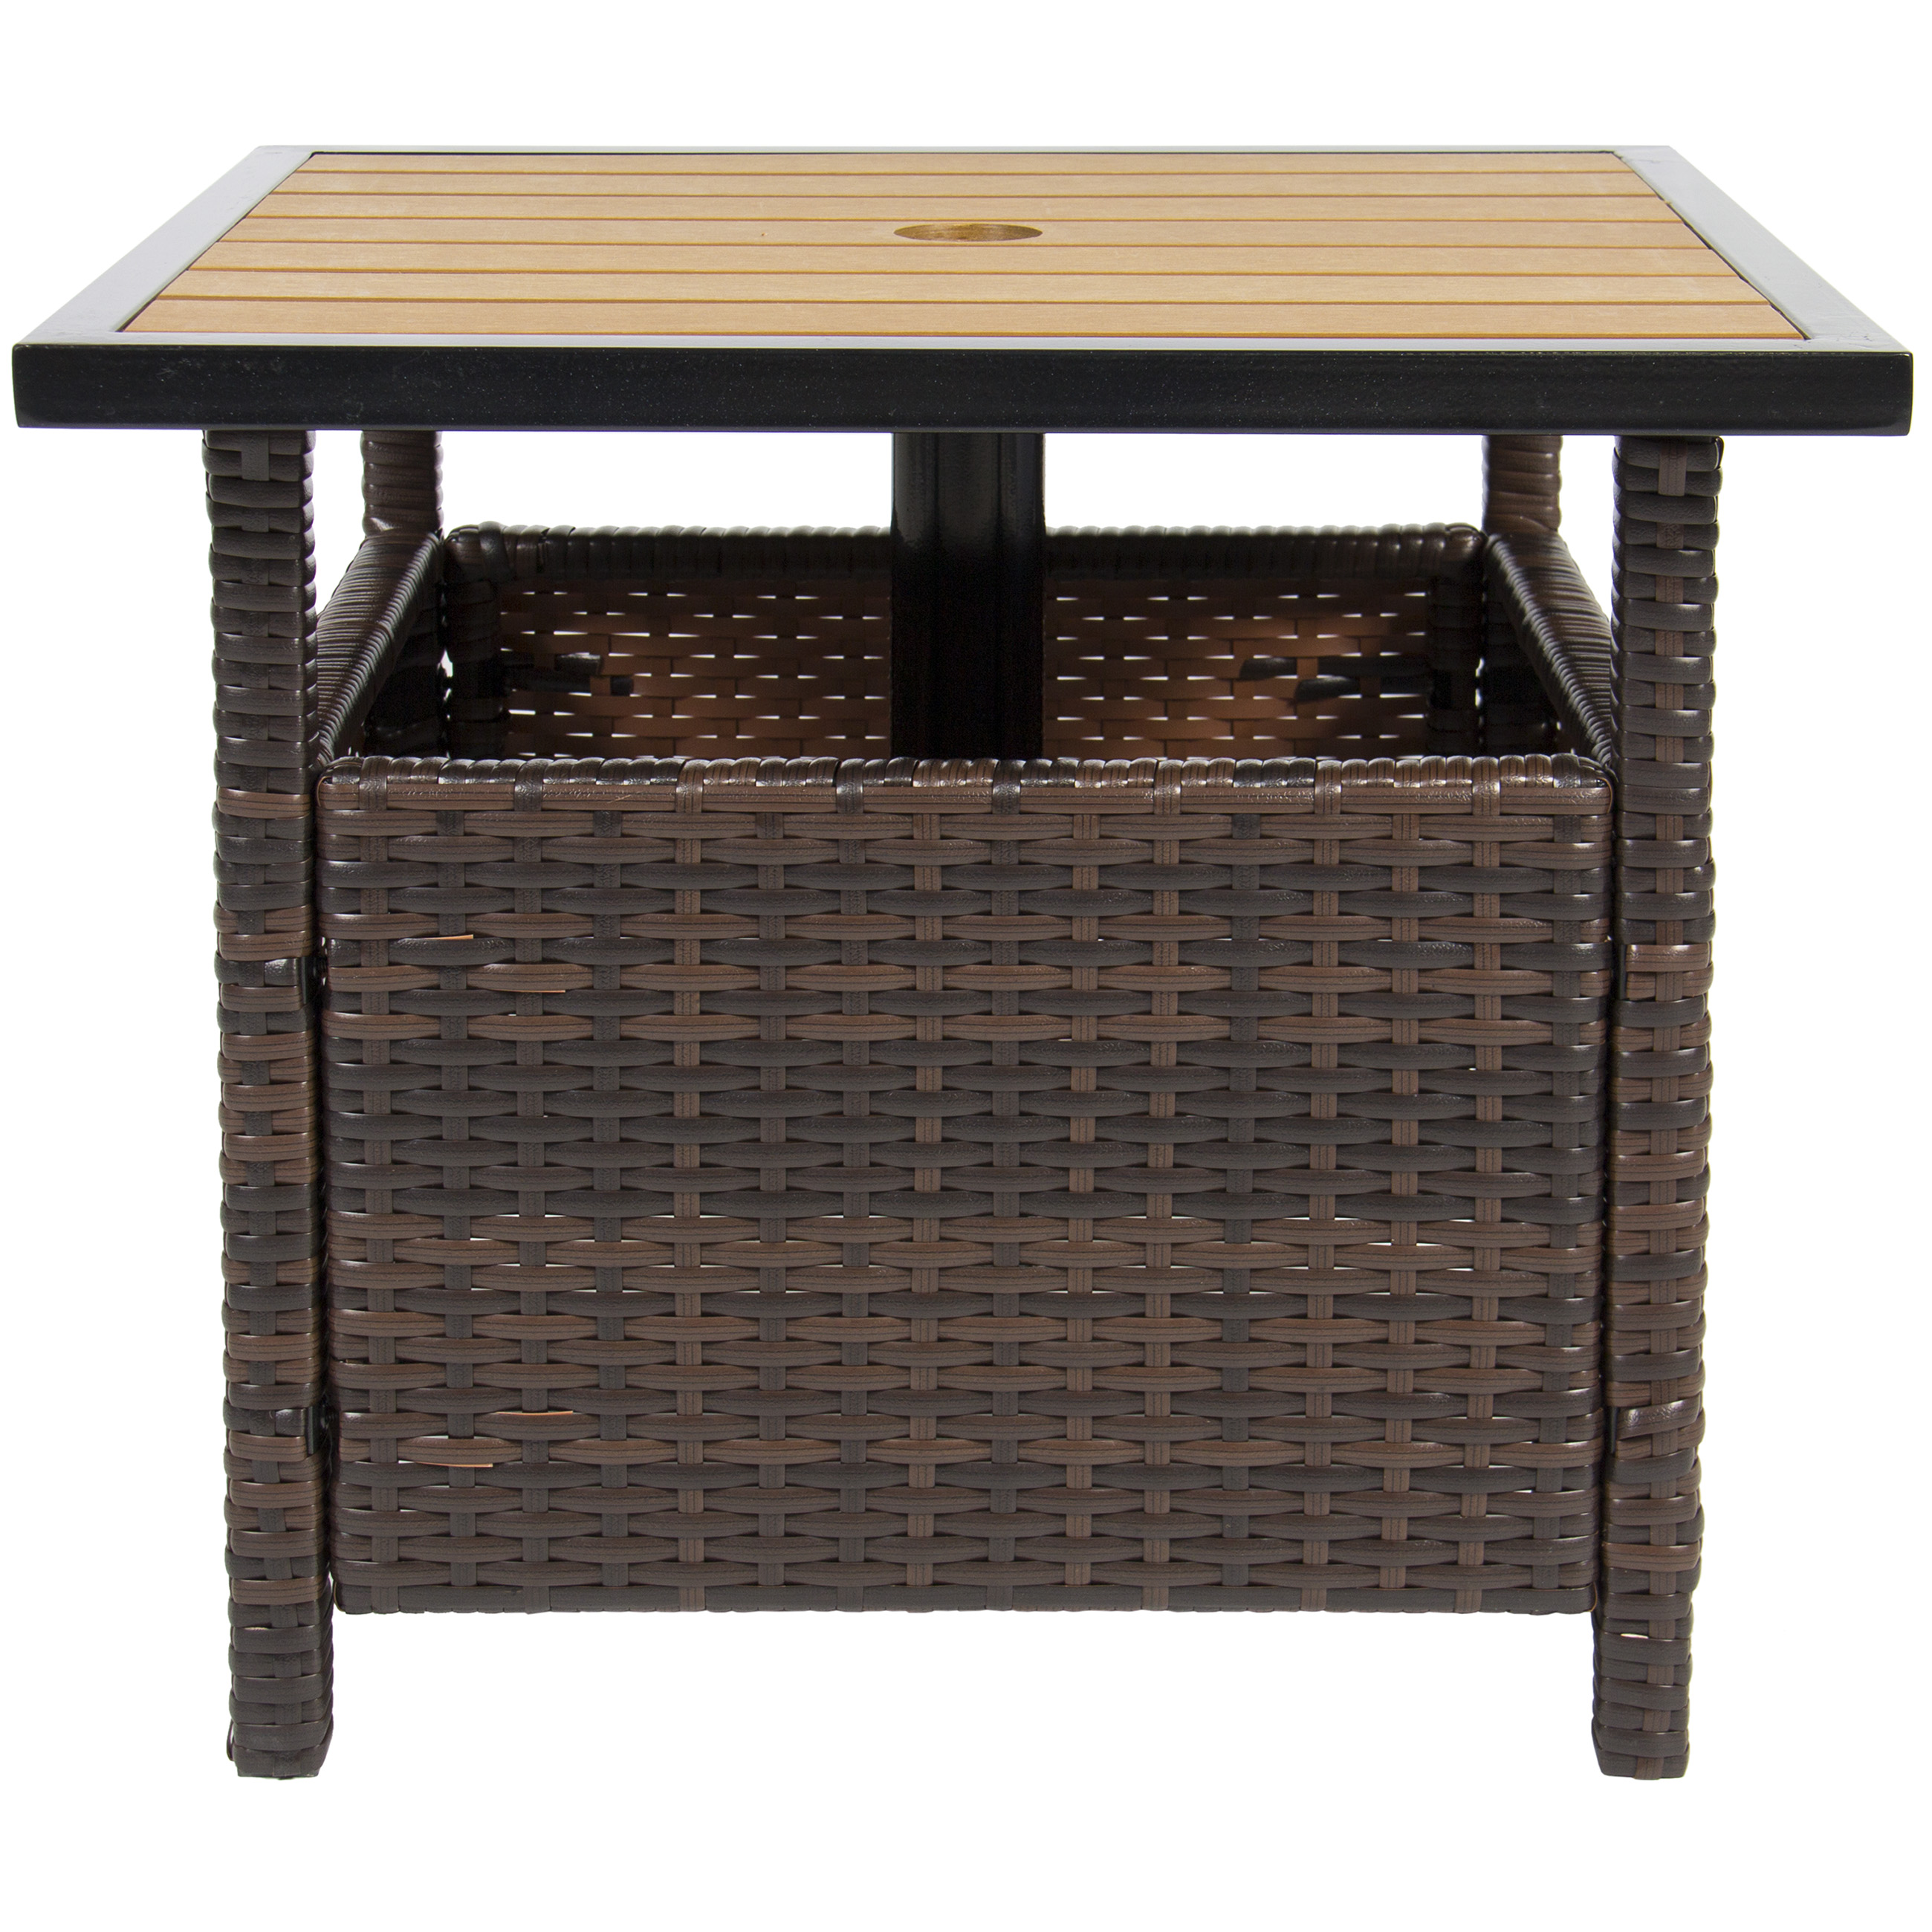 best choice products outdoor furniture wicker rattan patio umbrella side table stand for garden pool deck brown antique white accent dark coffee entry brass finish small tables